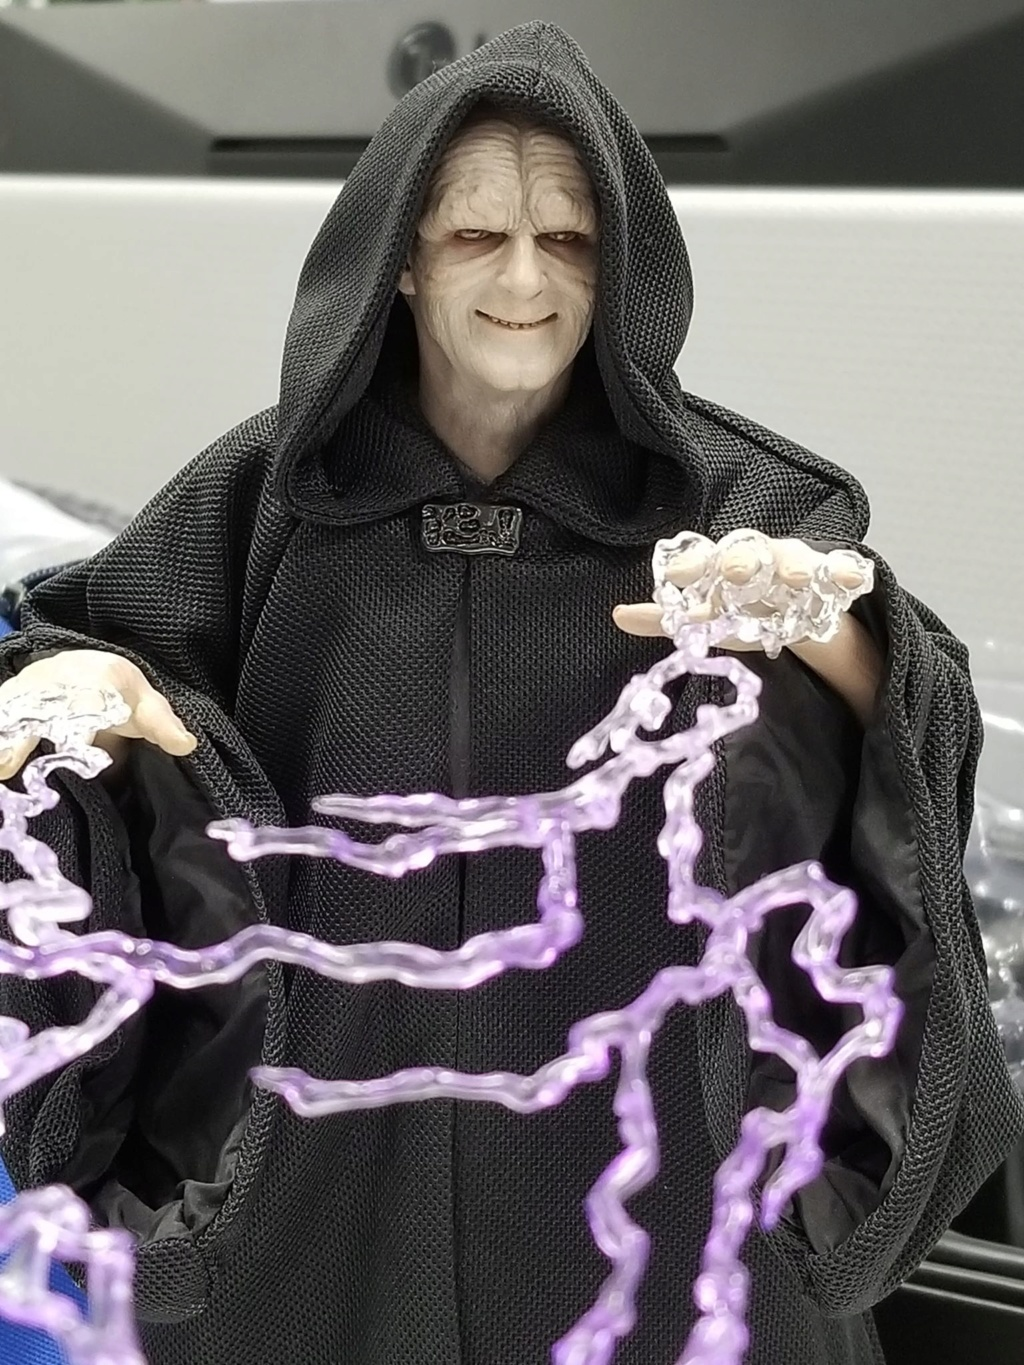 rotj - Hot Toys Star Wars Emperor Palpatine (Deluxe) Review - Page 2 48935110